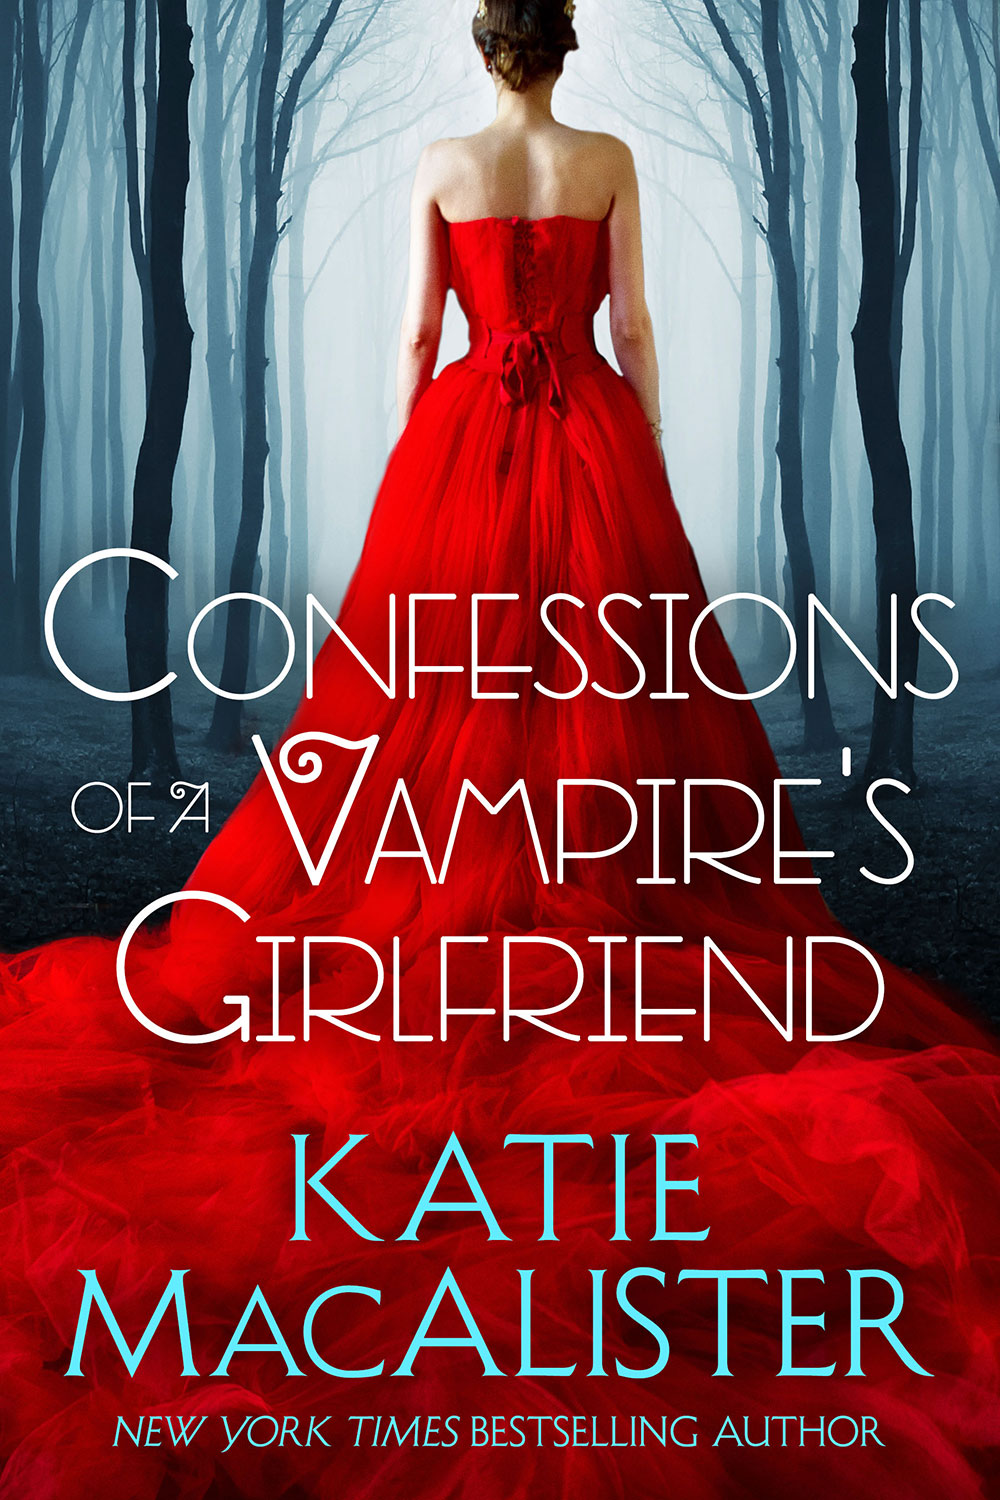 Books by Katie MacAlister on Google Play